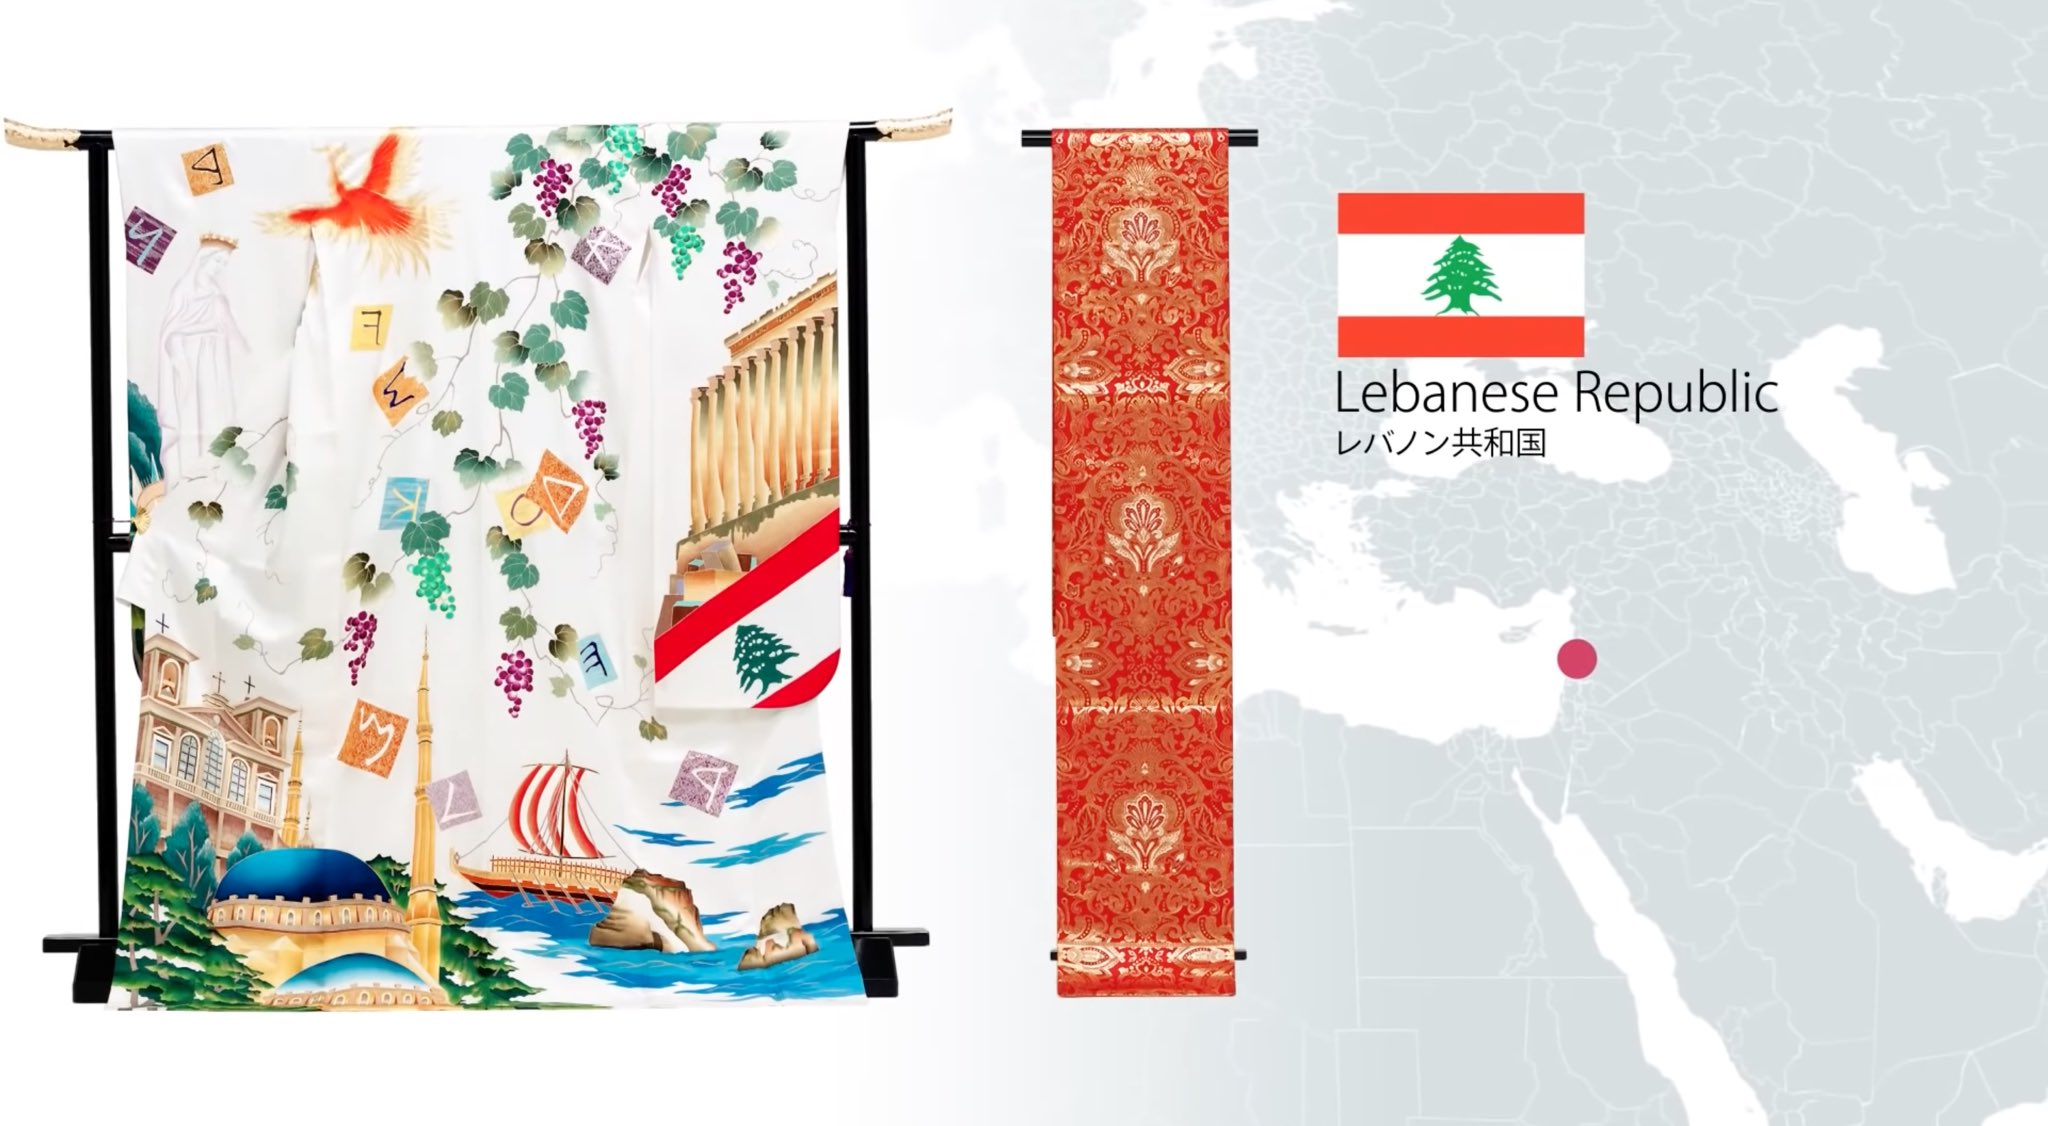 In celebration of the Olympic Games currently being hosted in Tokyo, Japanese artists have created a kimono for Lebanon and every other country participating in the event.